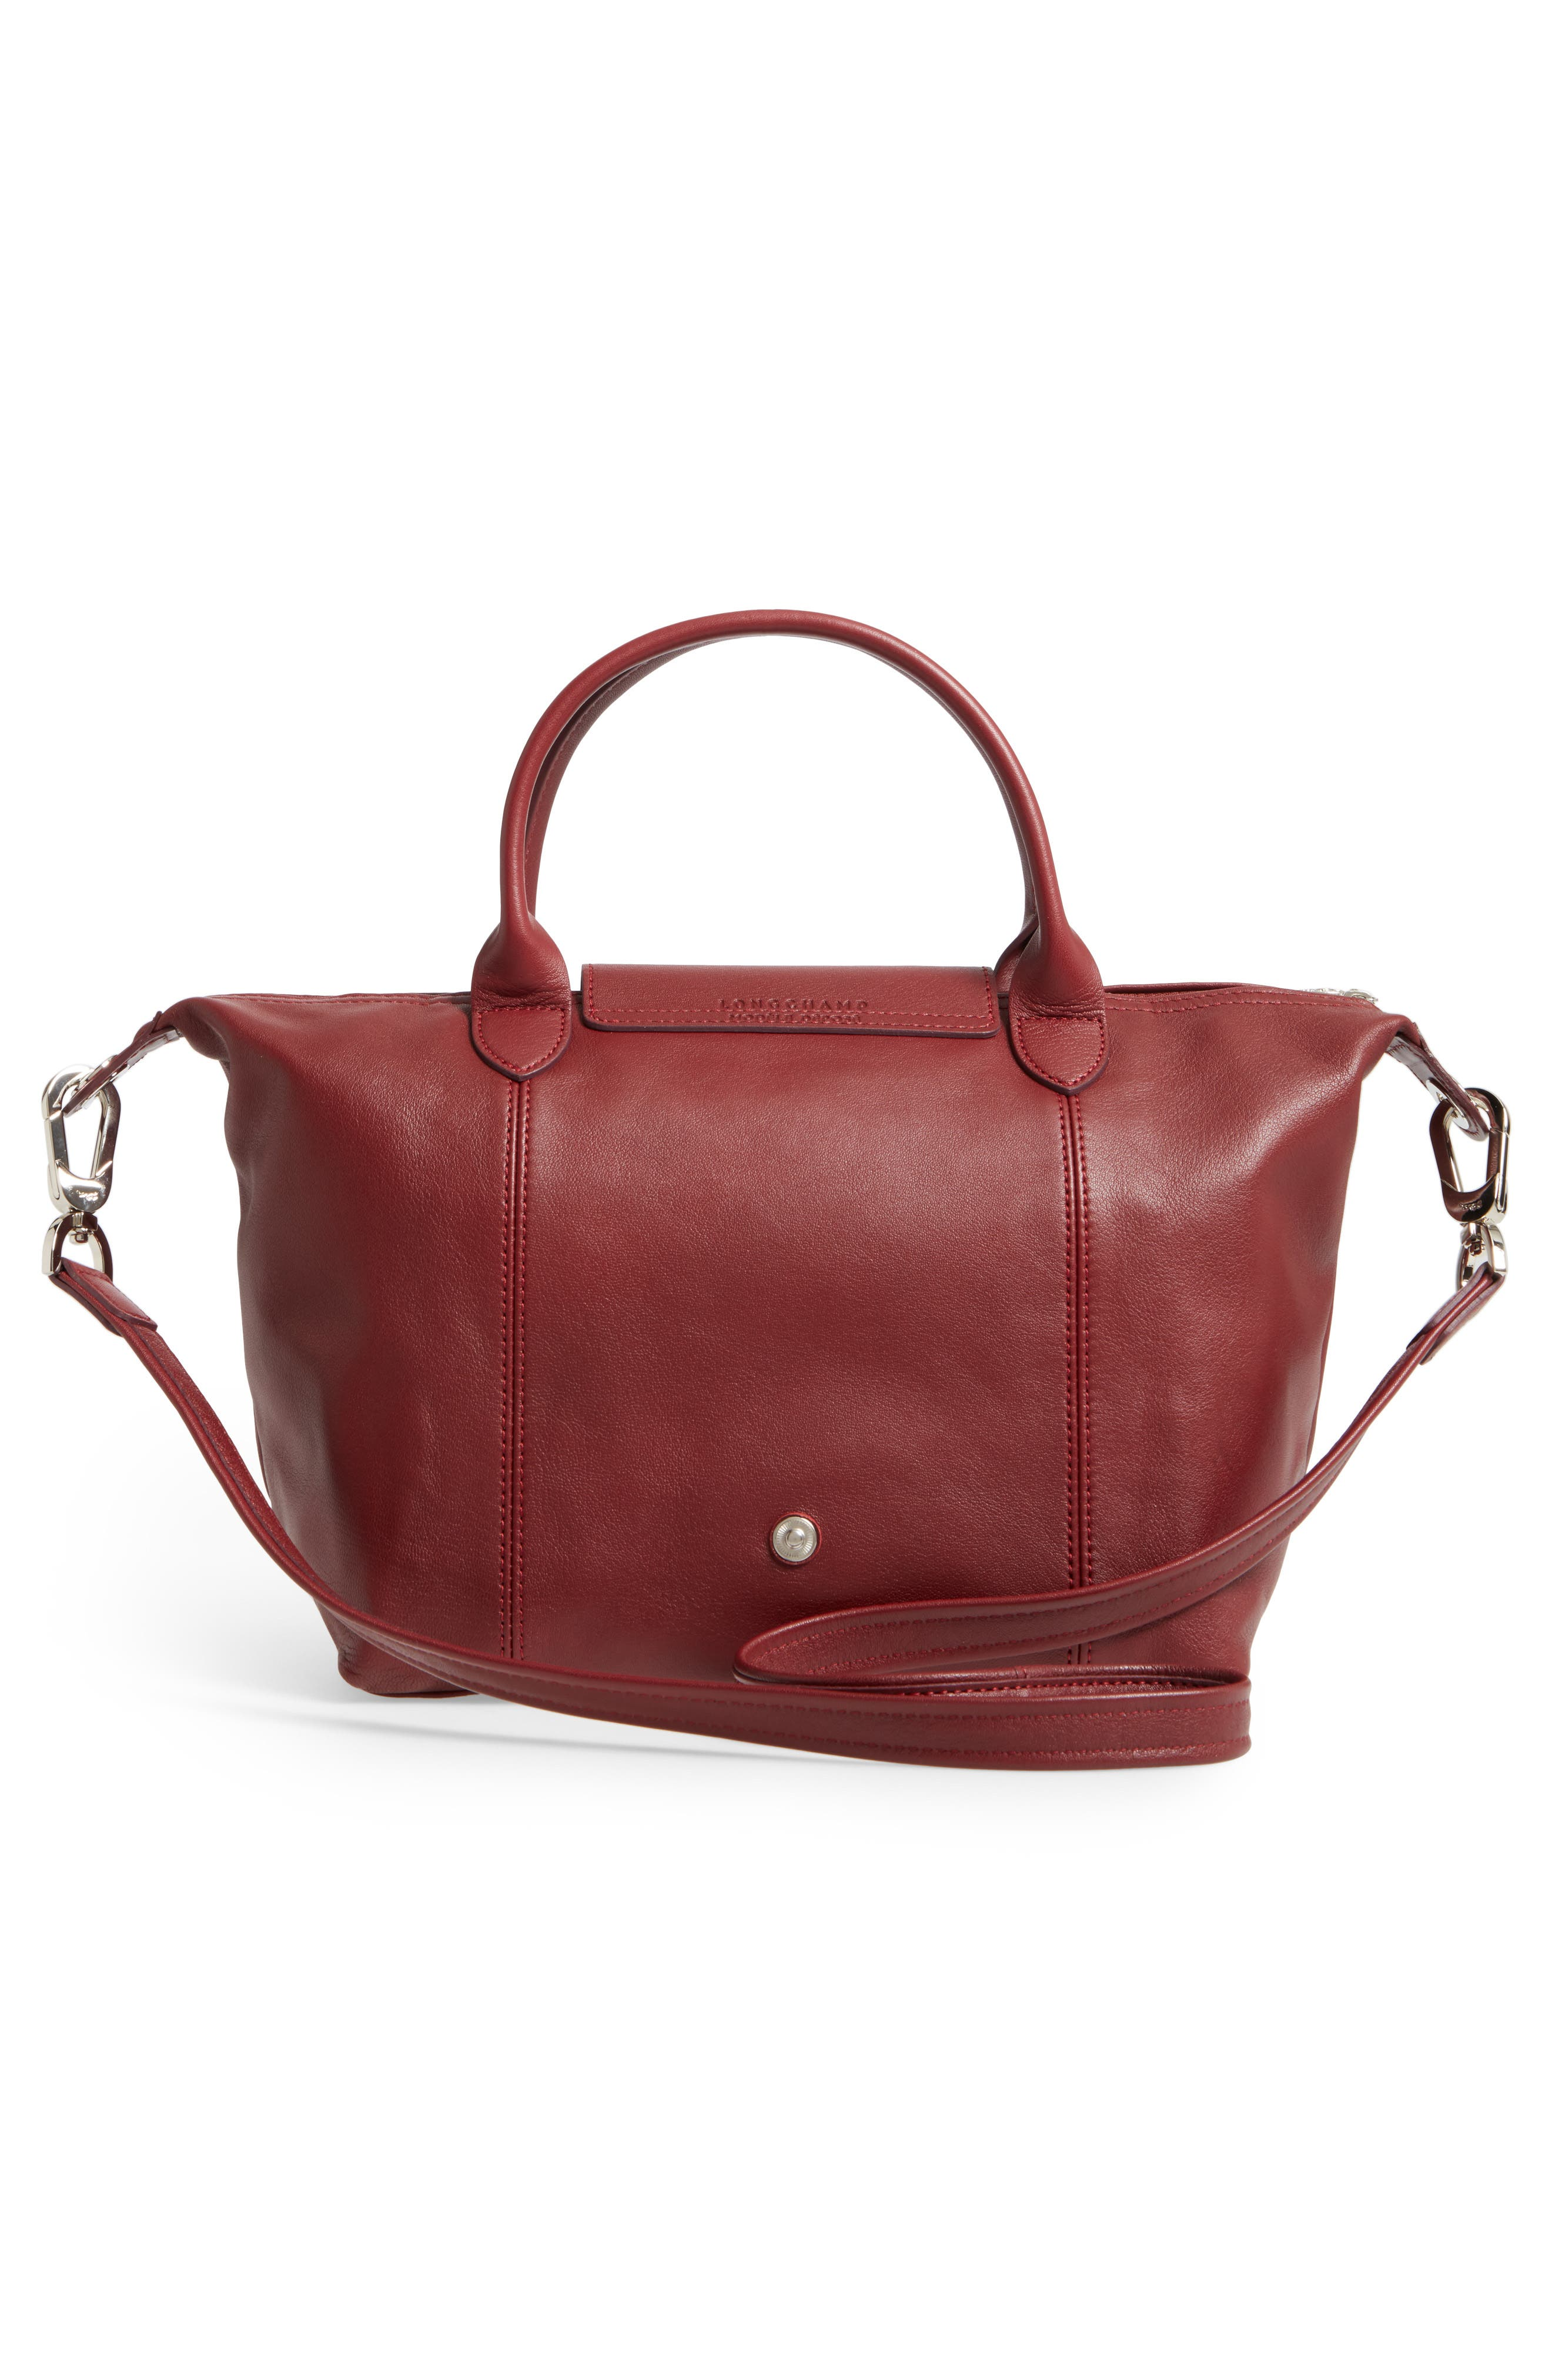 Small 'Le Pliage Cuir' Leather Top Handle Tote,                             Alternate thumbnail 53, color,